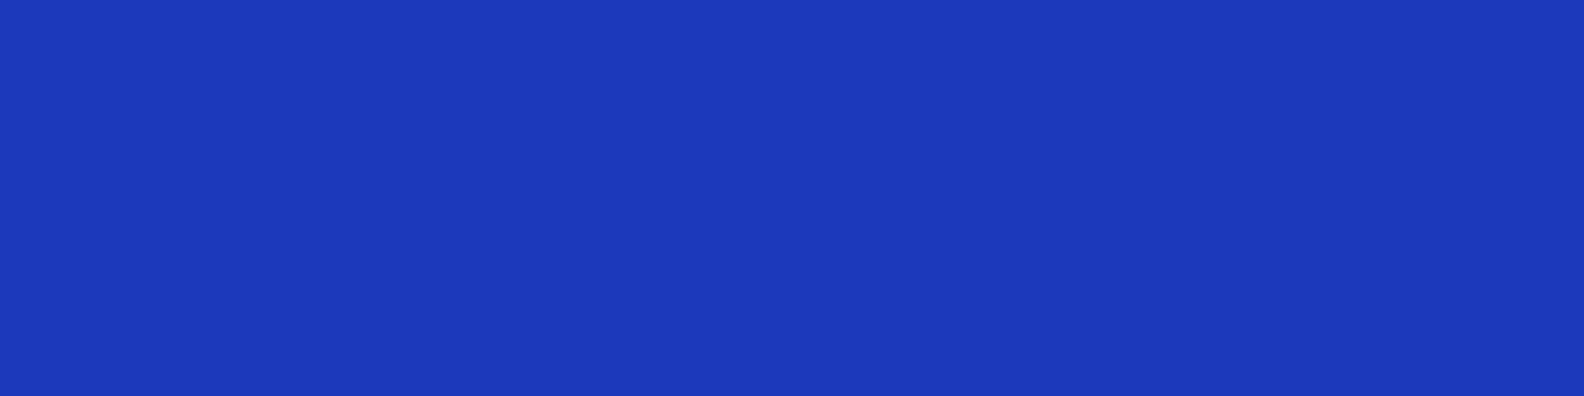 1584x396 Persian Blue Solid Color Background